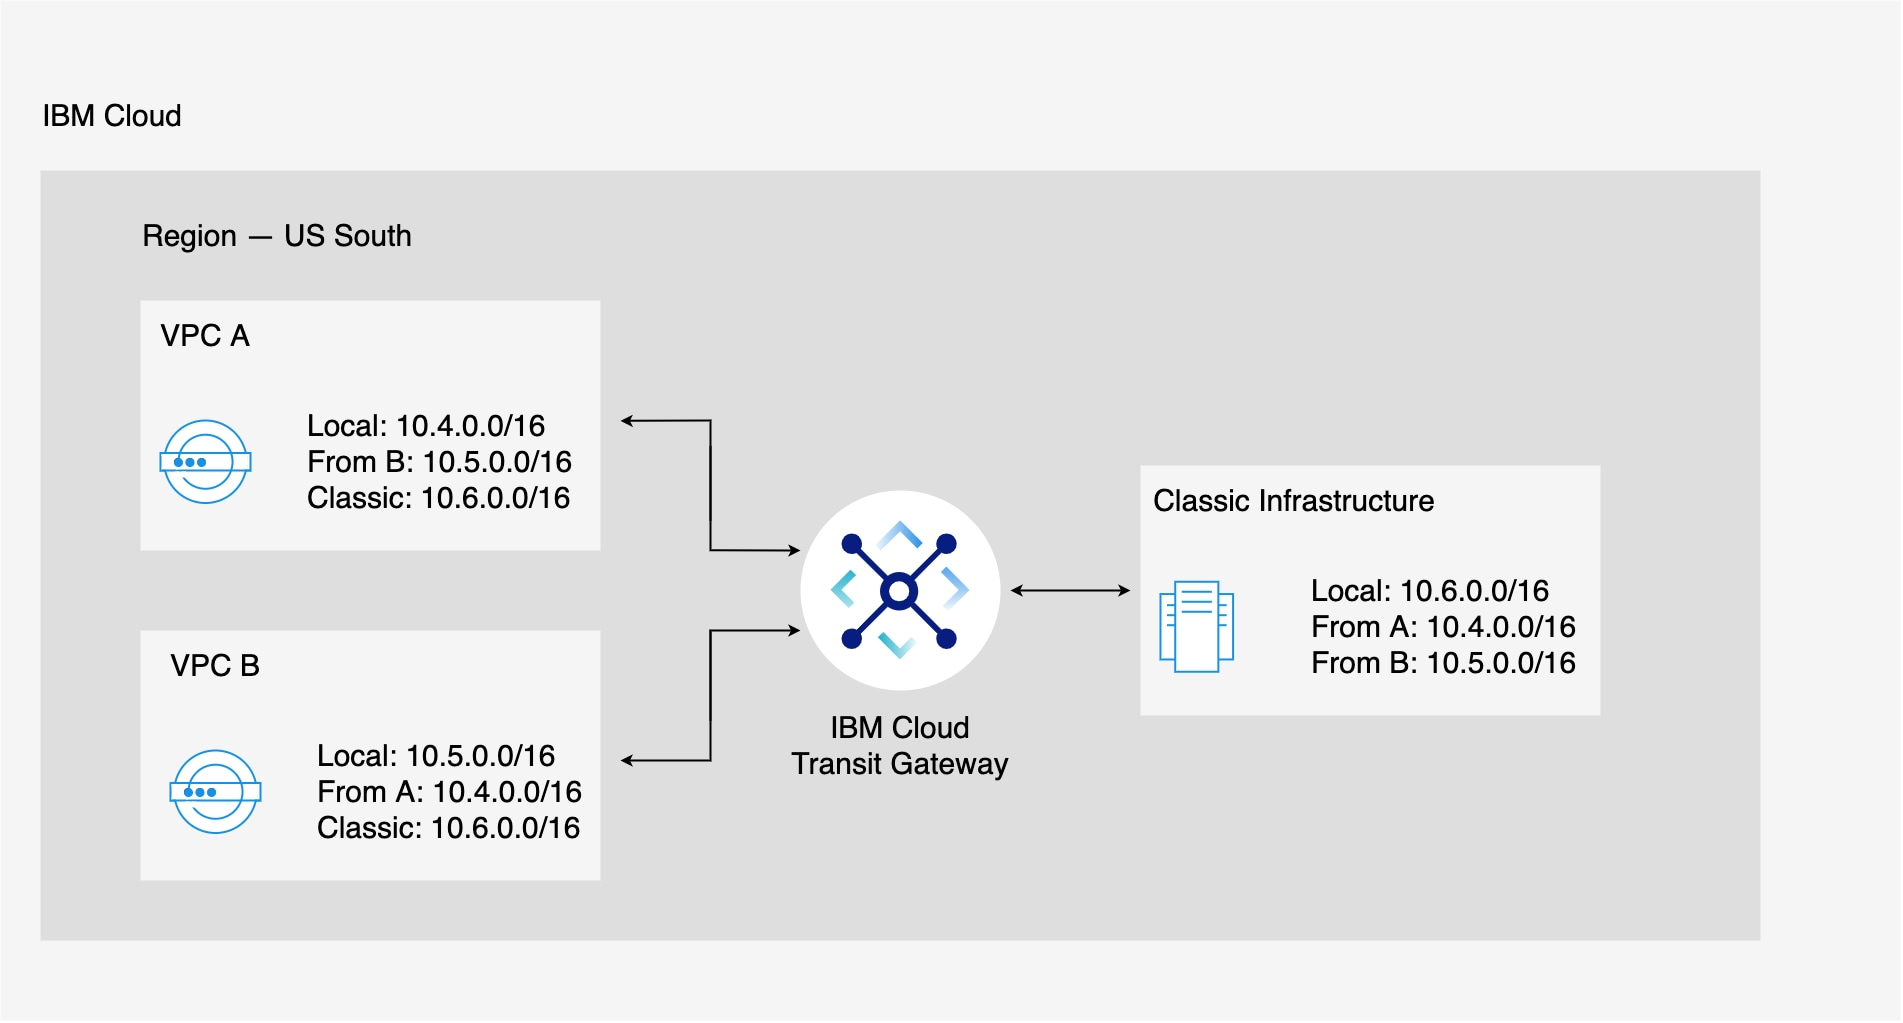 Flowchart showing routing between multiple local VPCs through IBM Cloud Transit Gateway